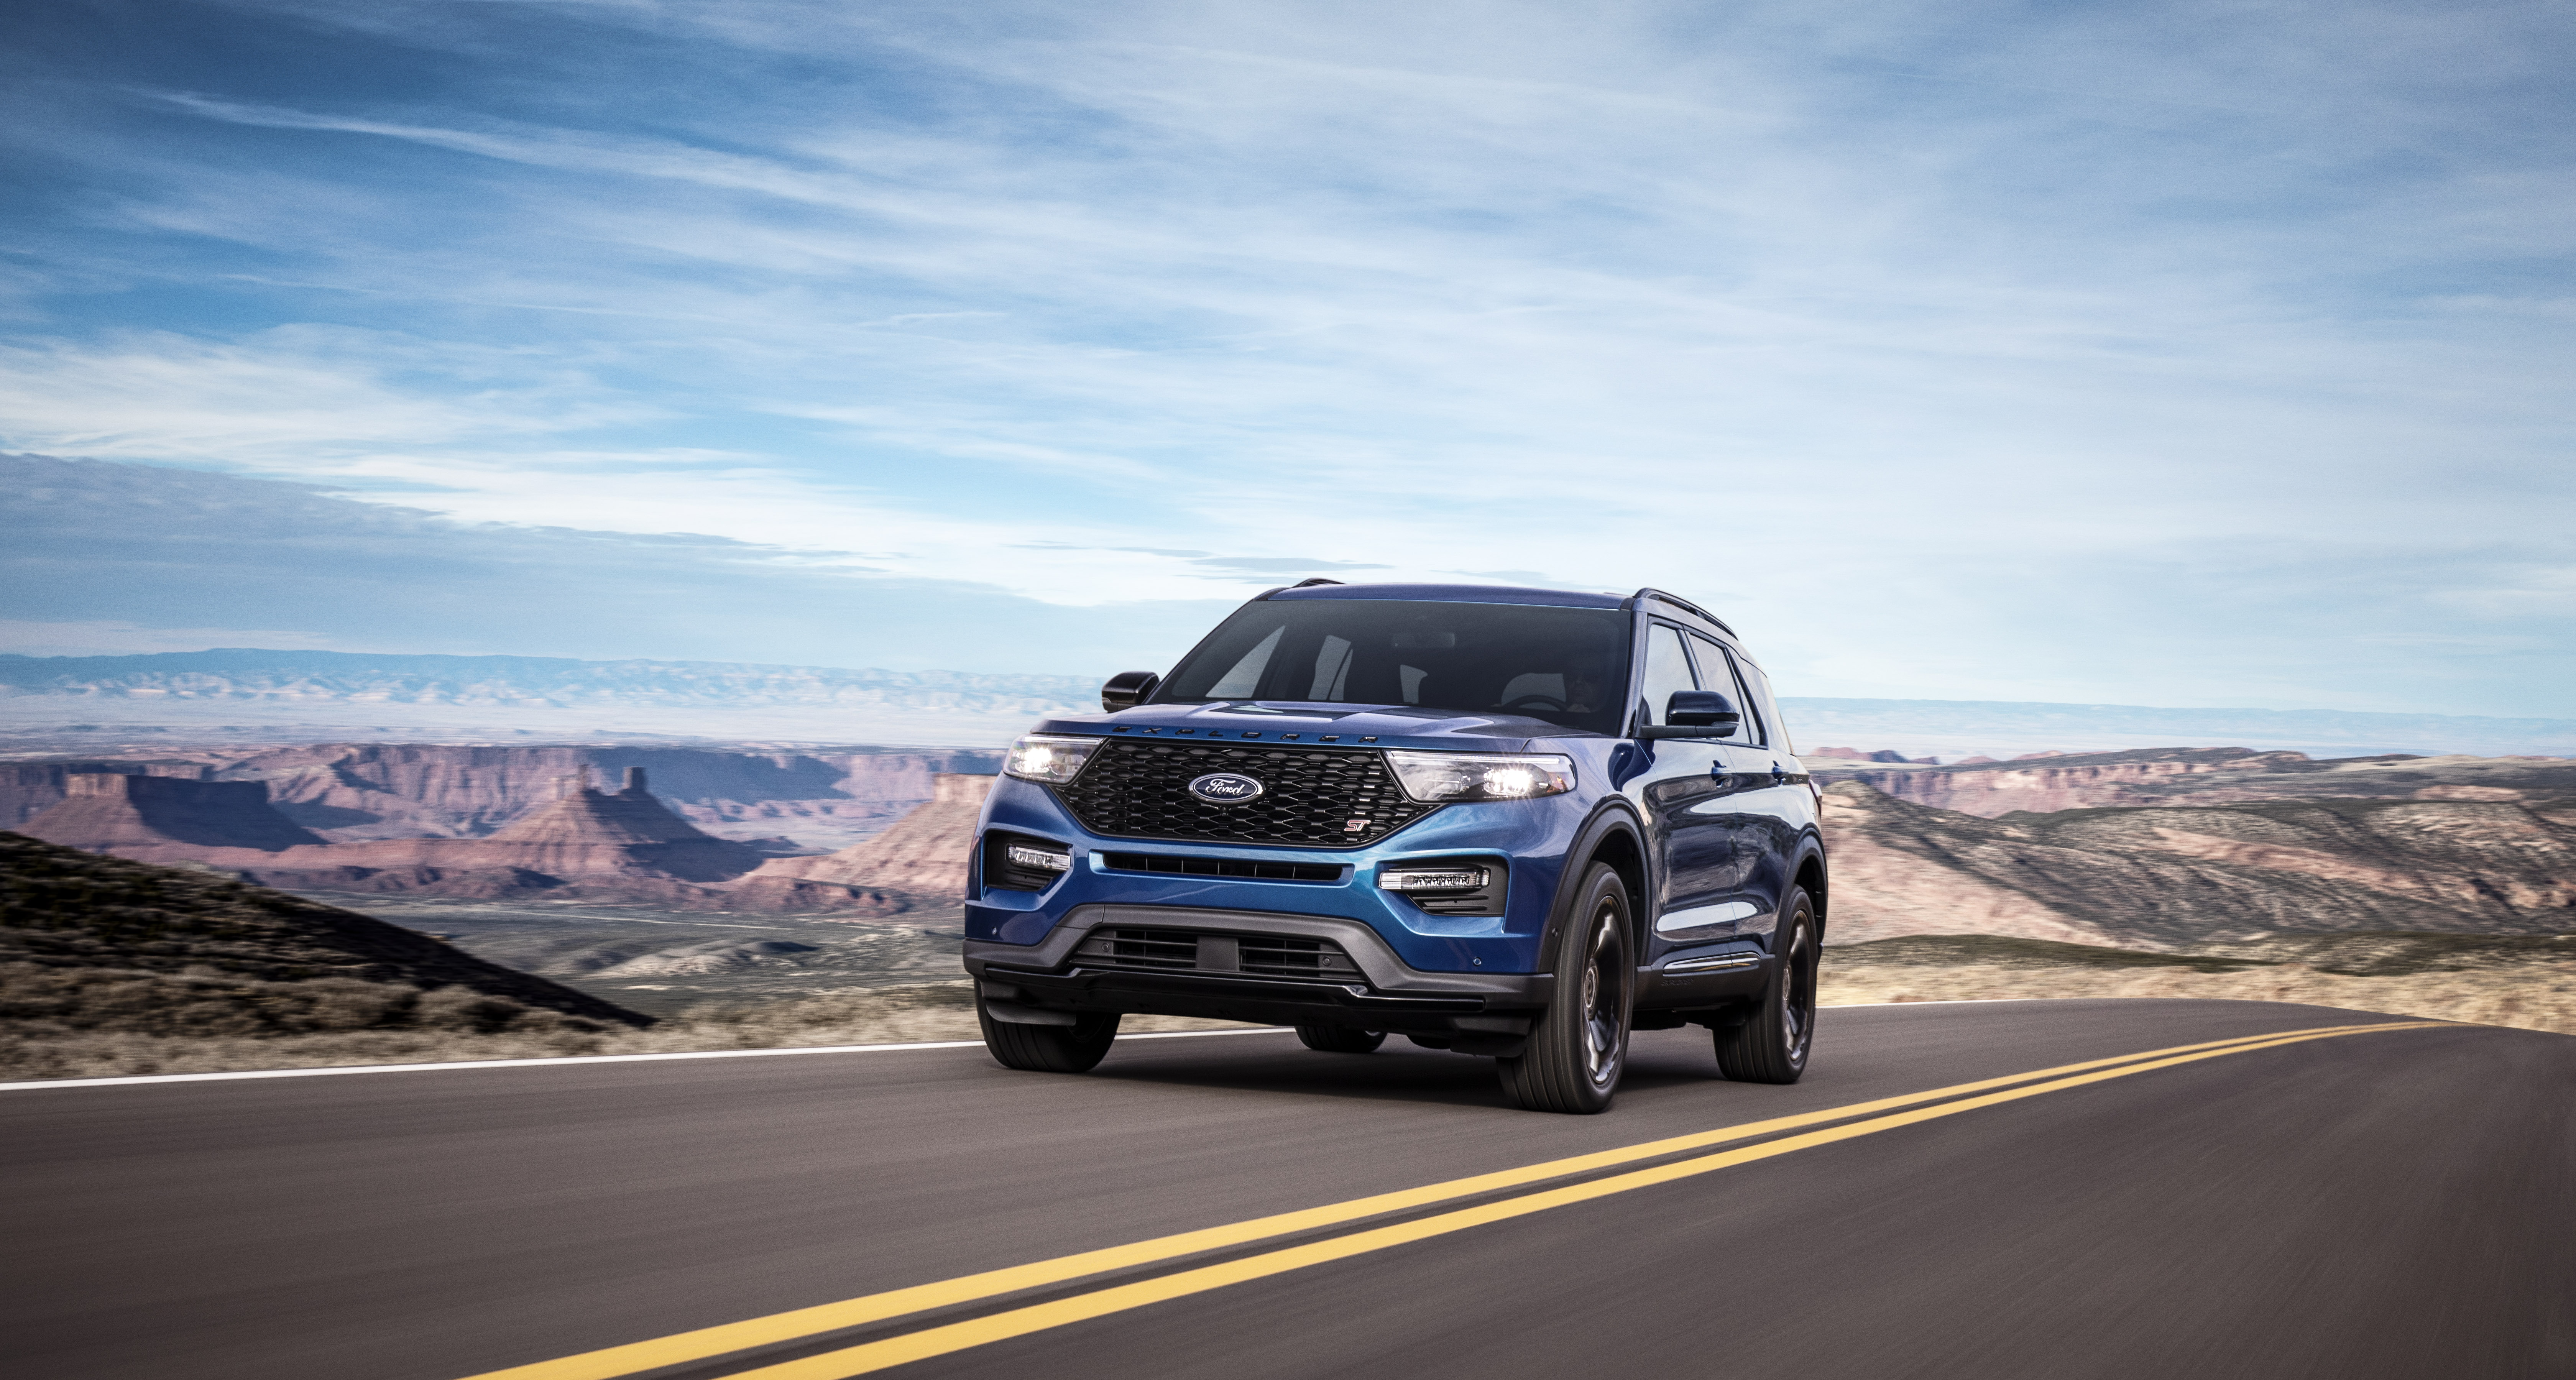 2020 Kia Telluride: What Else Can You Buy? - CarPrices.ae